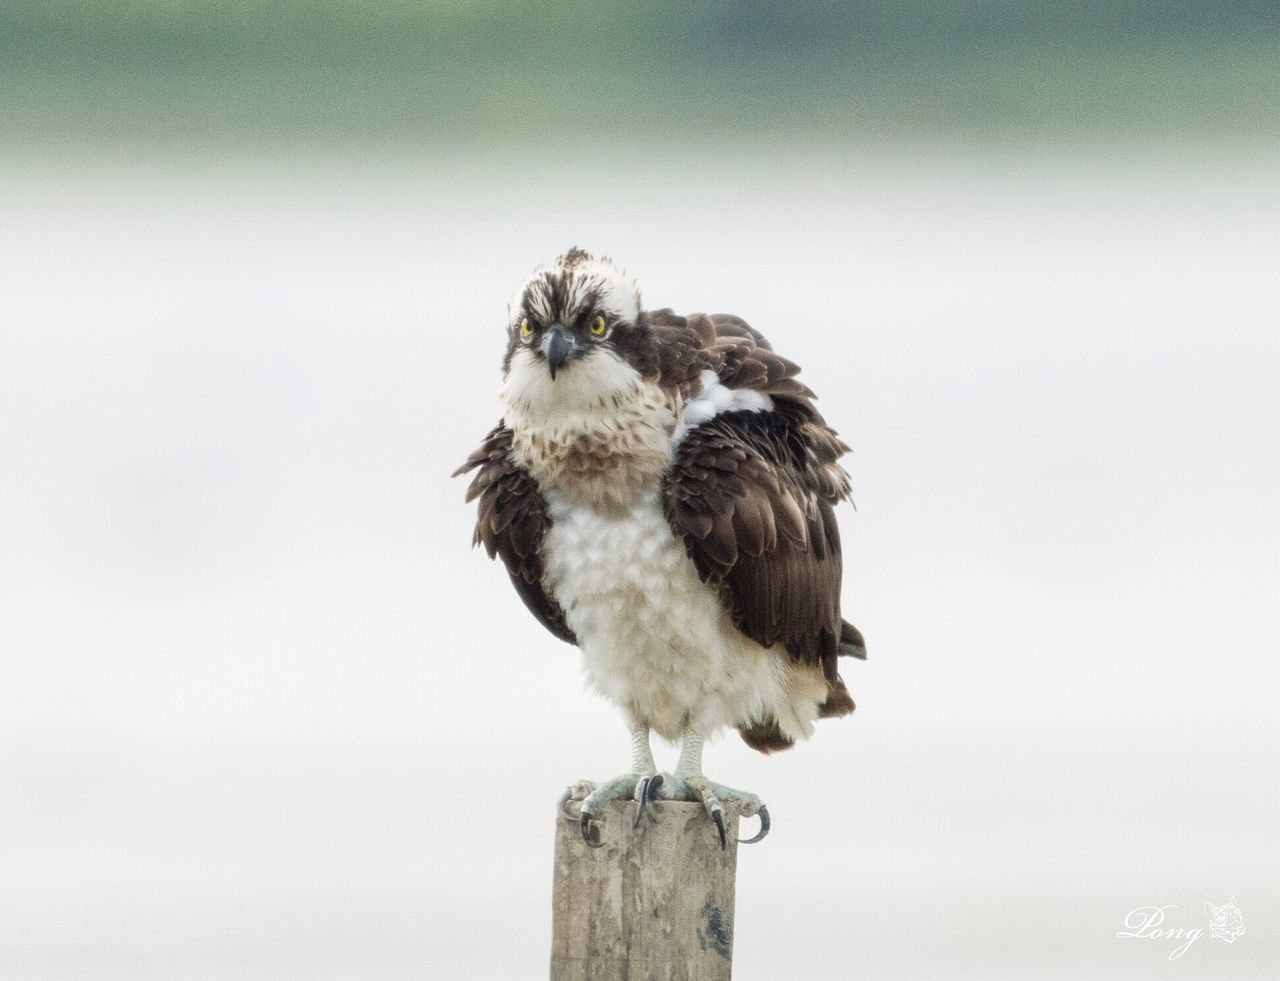 Osprey Wwfhk Maipo Nature Reserve Nikon Animal_collection Bird Photography Animals In The Wild Nature Photography NikonD810 Nikonphotography 800mm Birding Animal Photography Hkbird HongKong Osprey